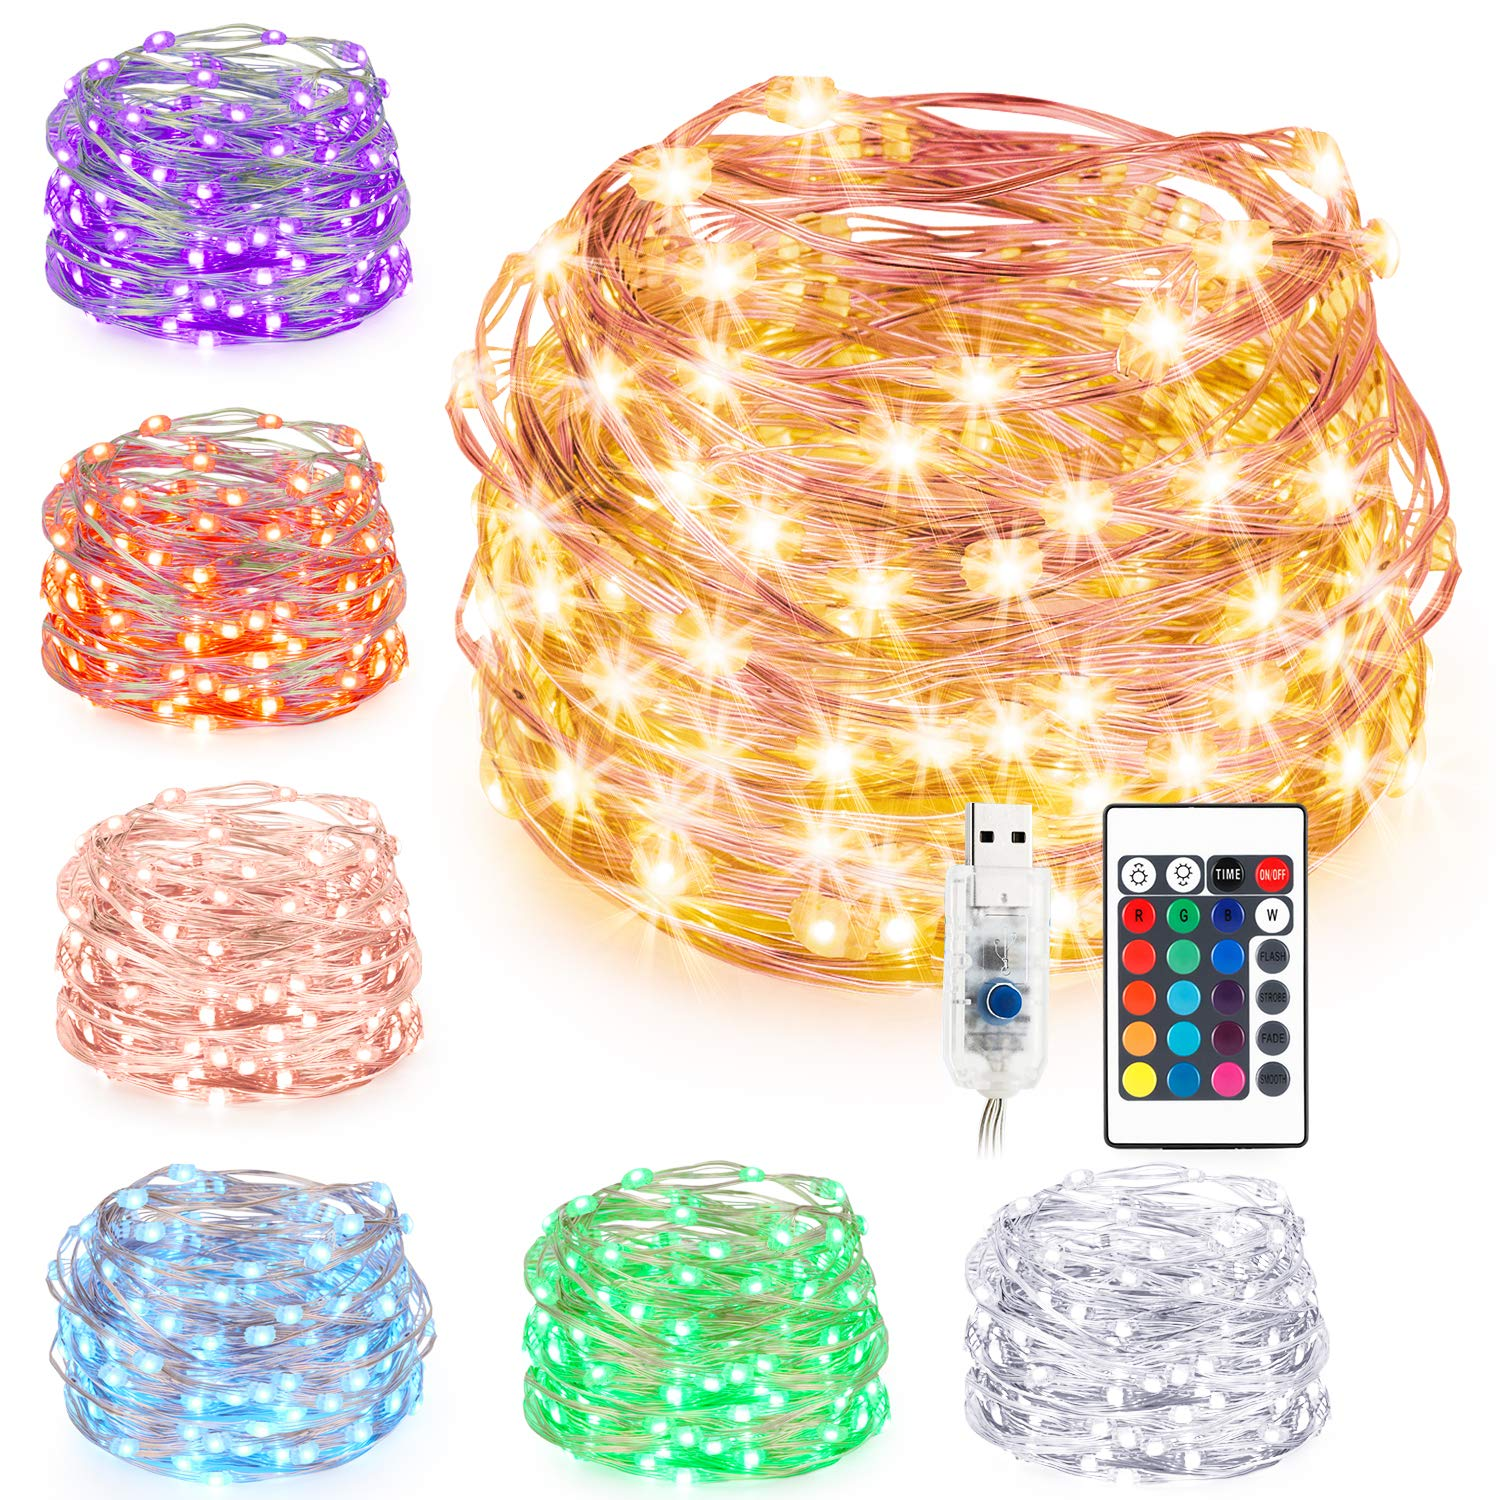 Kohree String Lights Christmas Light, Fairy Light, 33ft 100 LEDs 16 Colors, USB Powered Warm White Multi Color Changing String Lights with Remote, Silver Wire Lights for Holiday Decoration